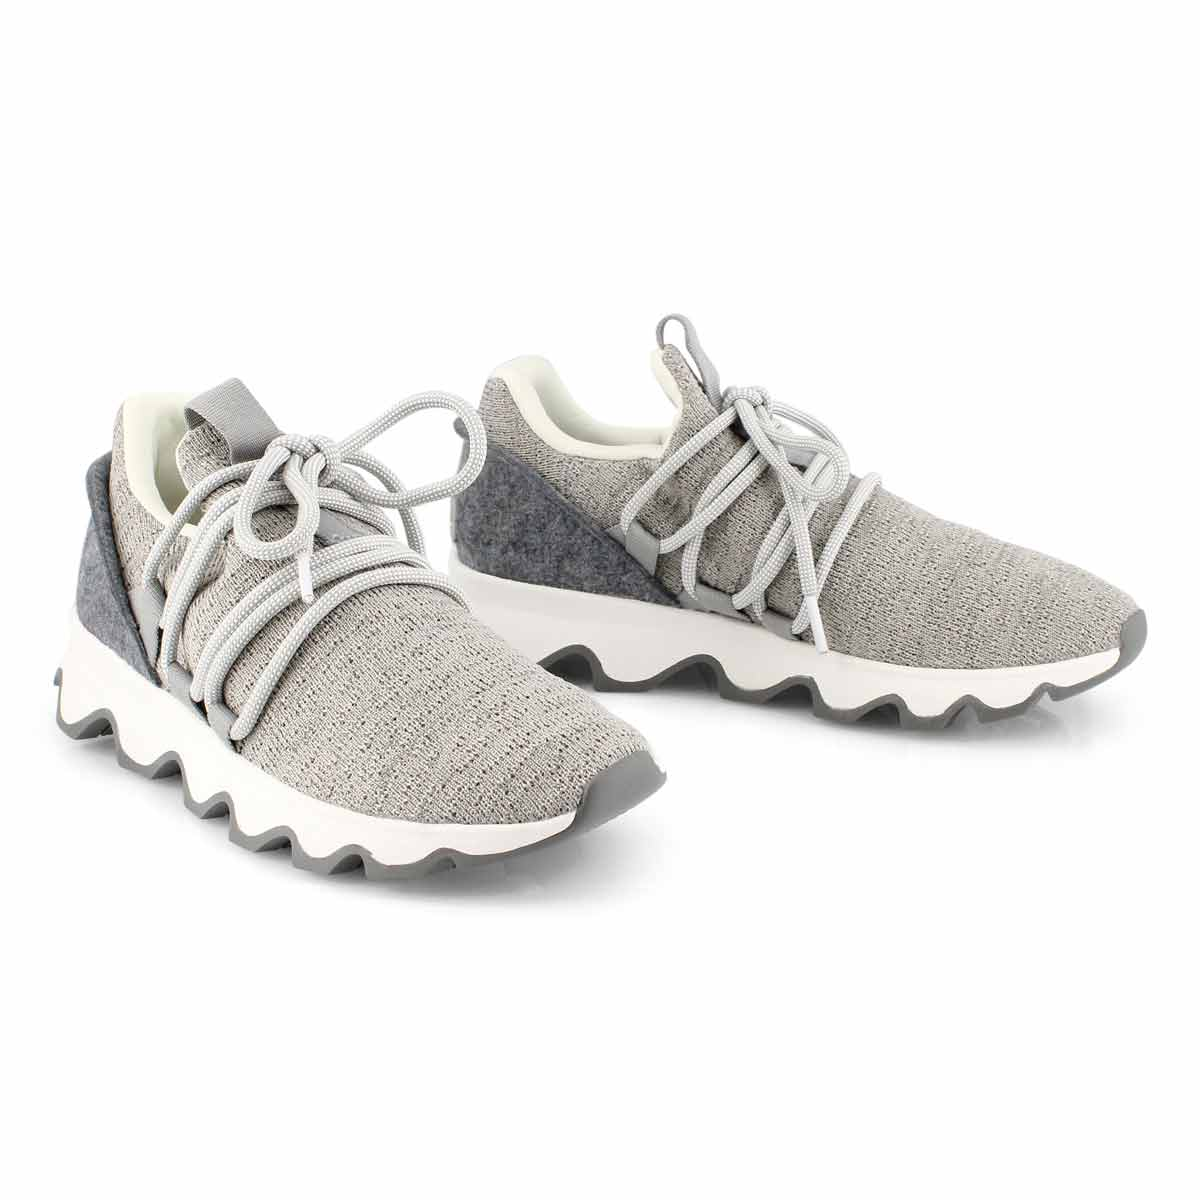 Lds Kinetic Lace dove fashion snkr